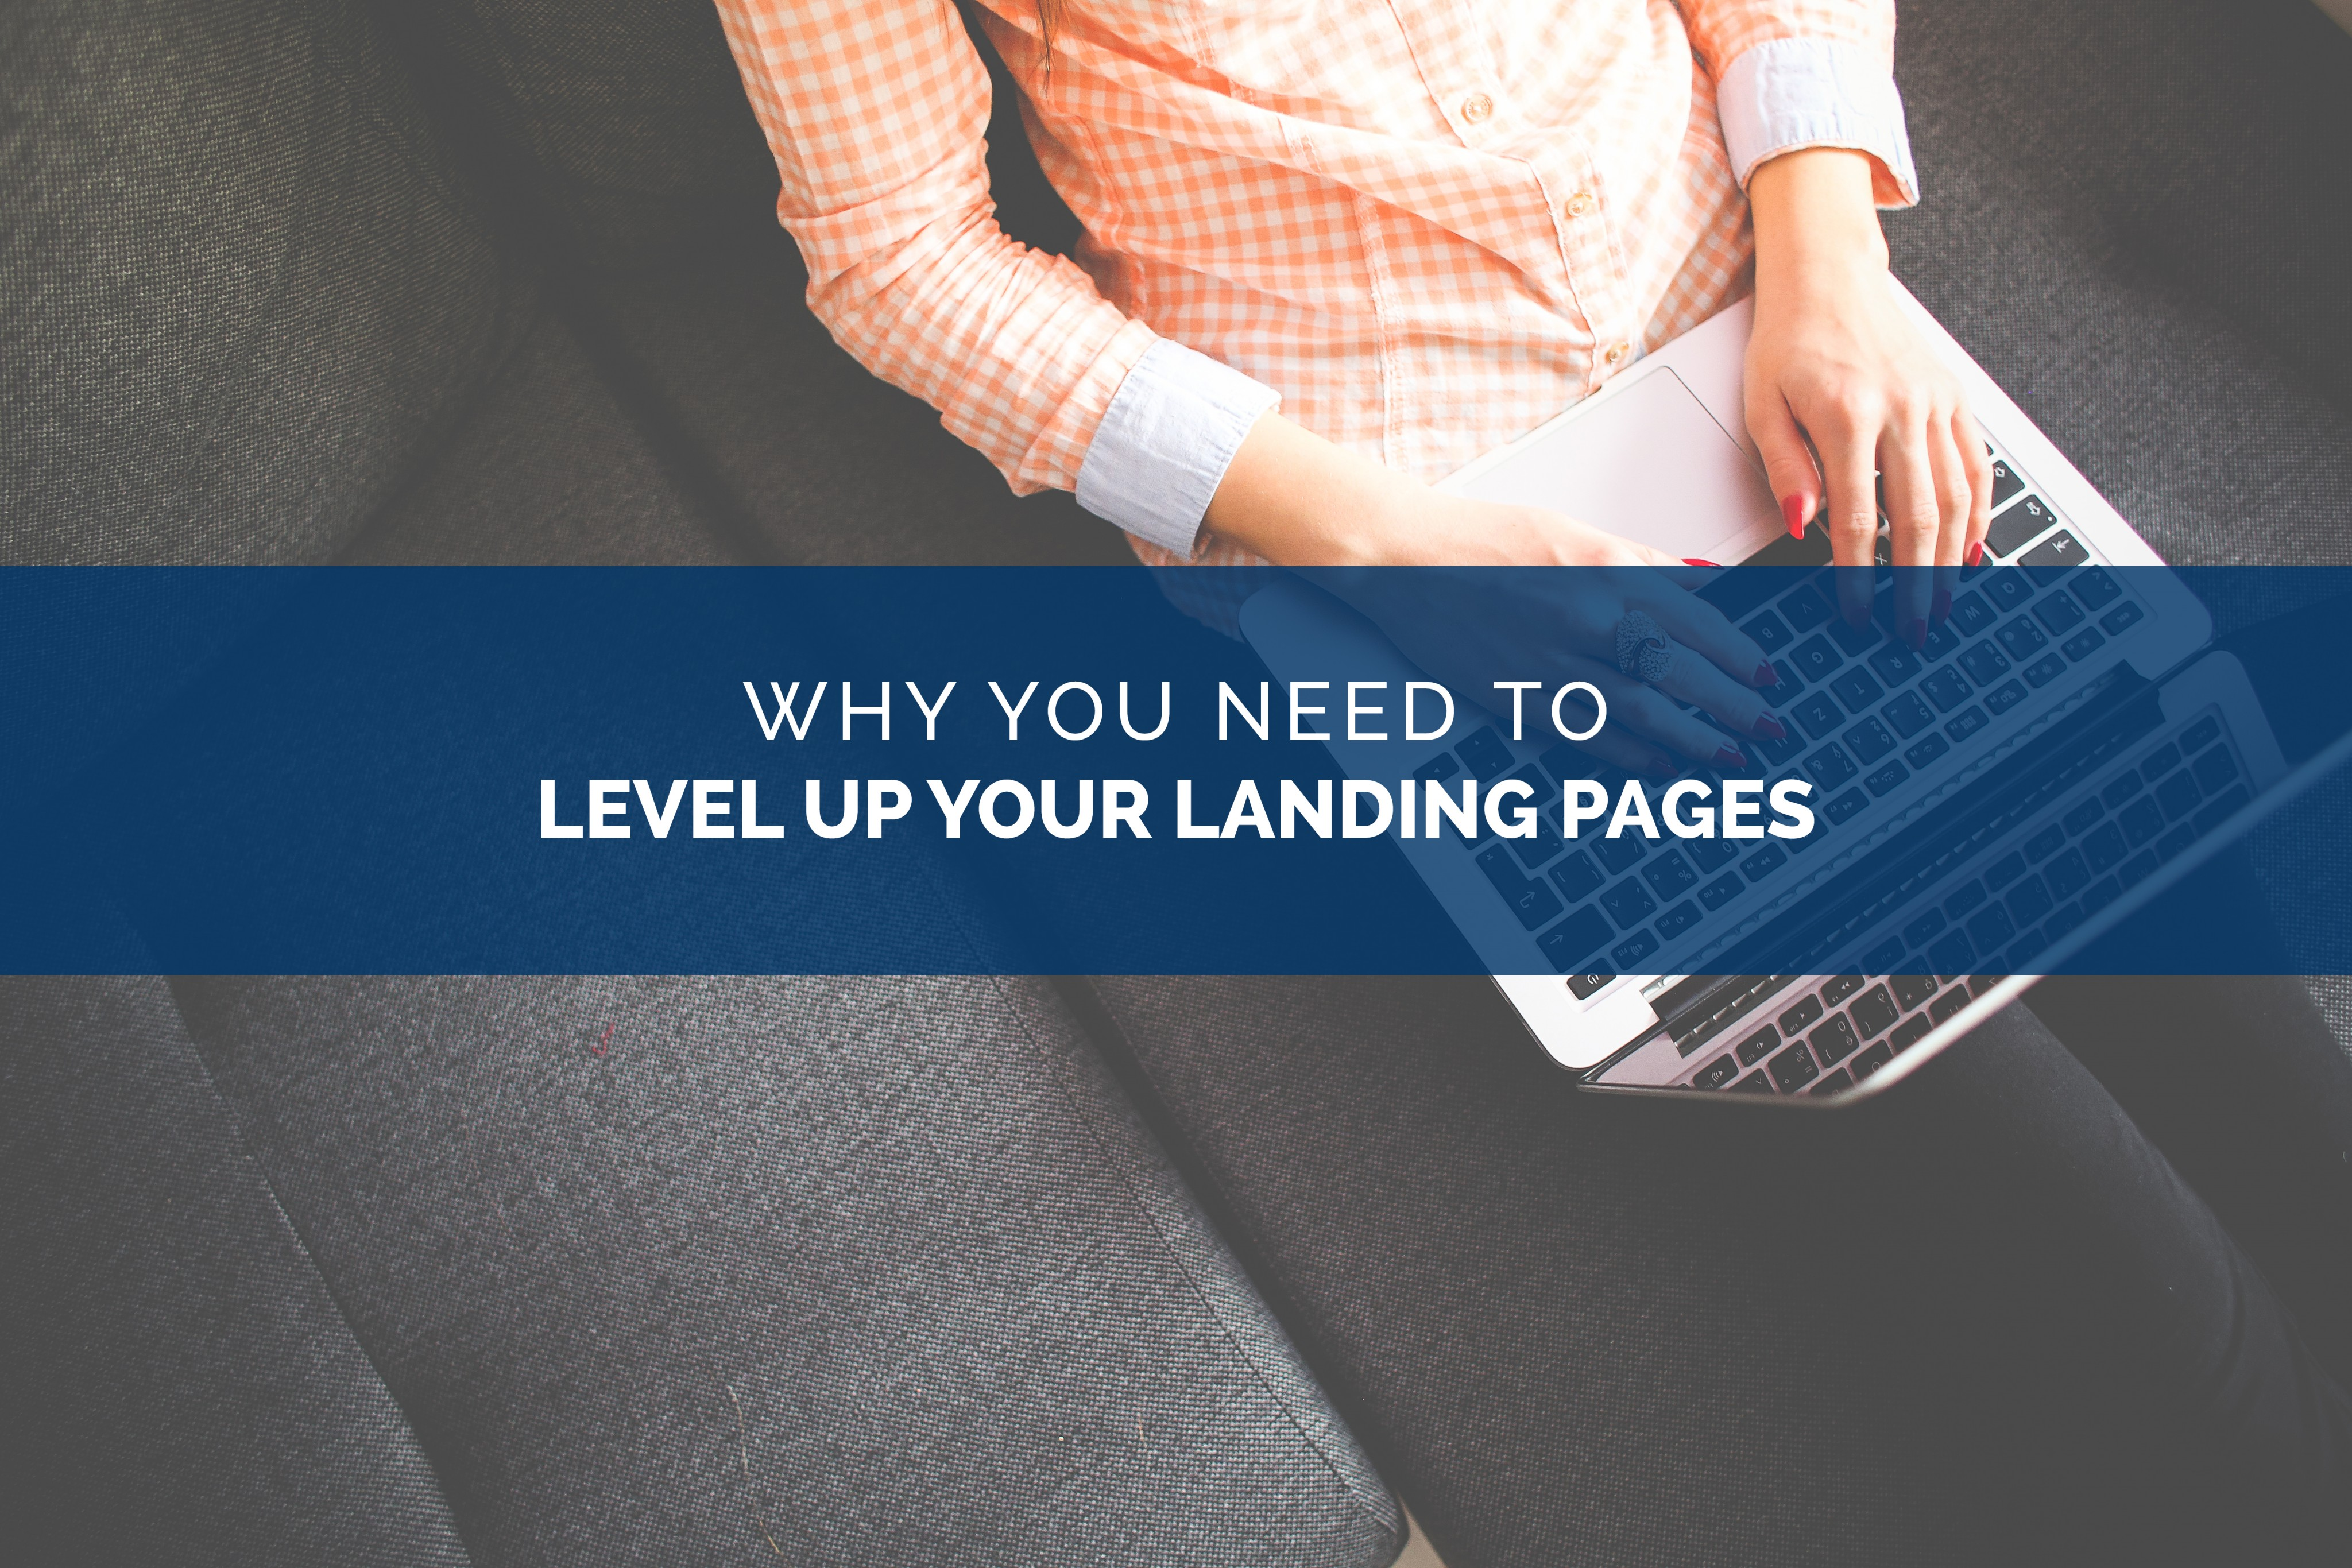 Why You Need to Level Up Your Landing Pages